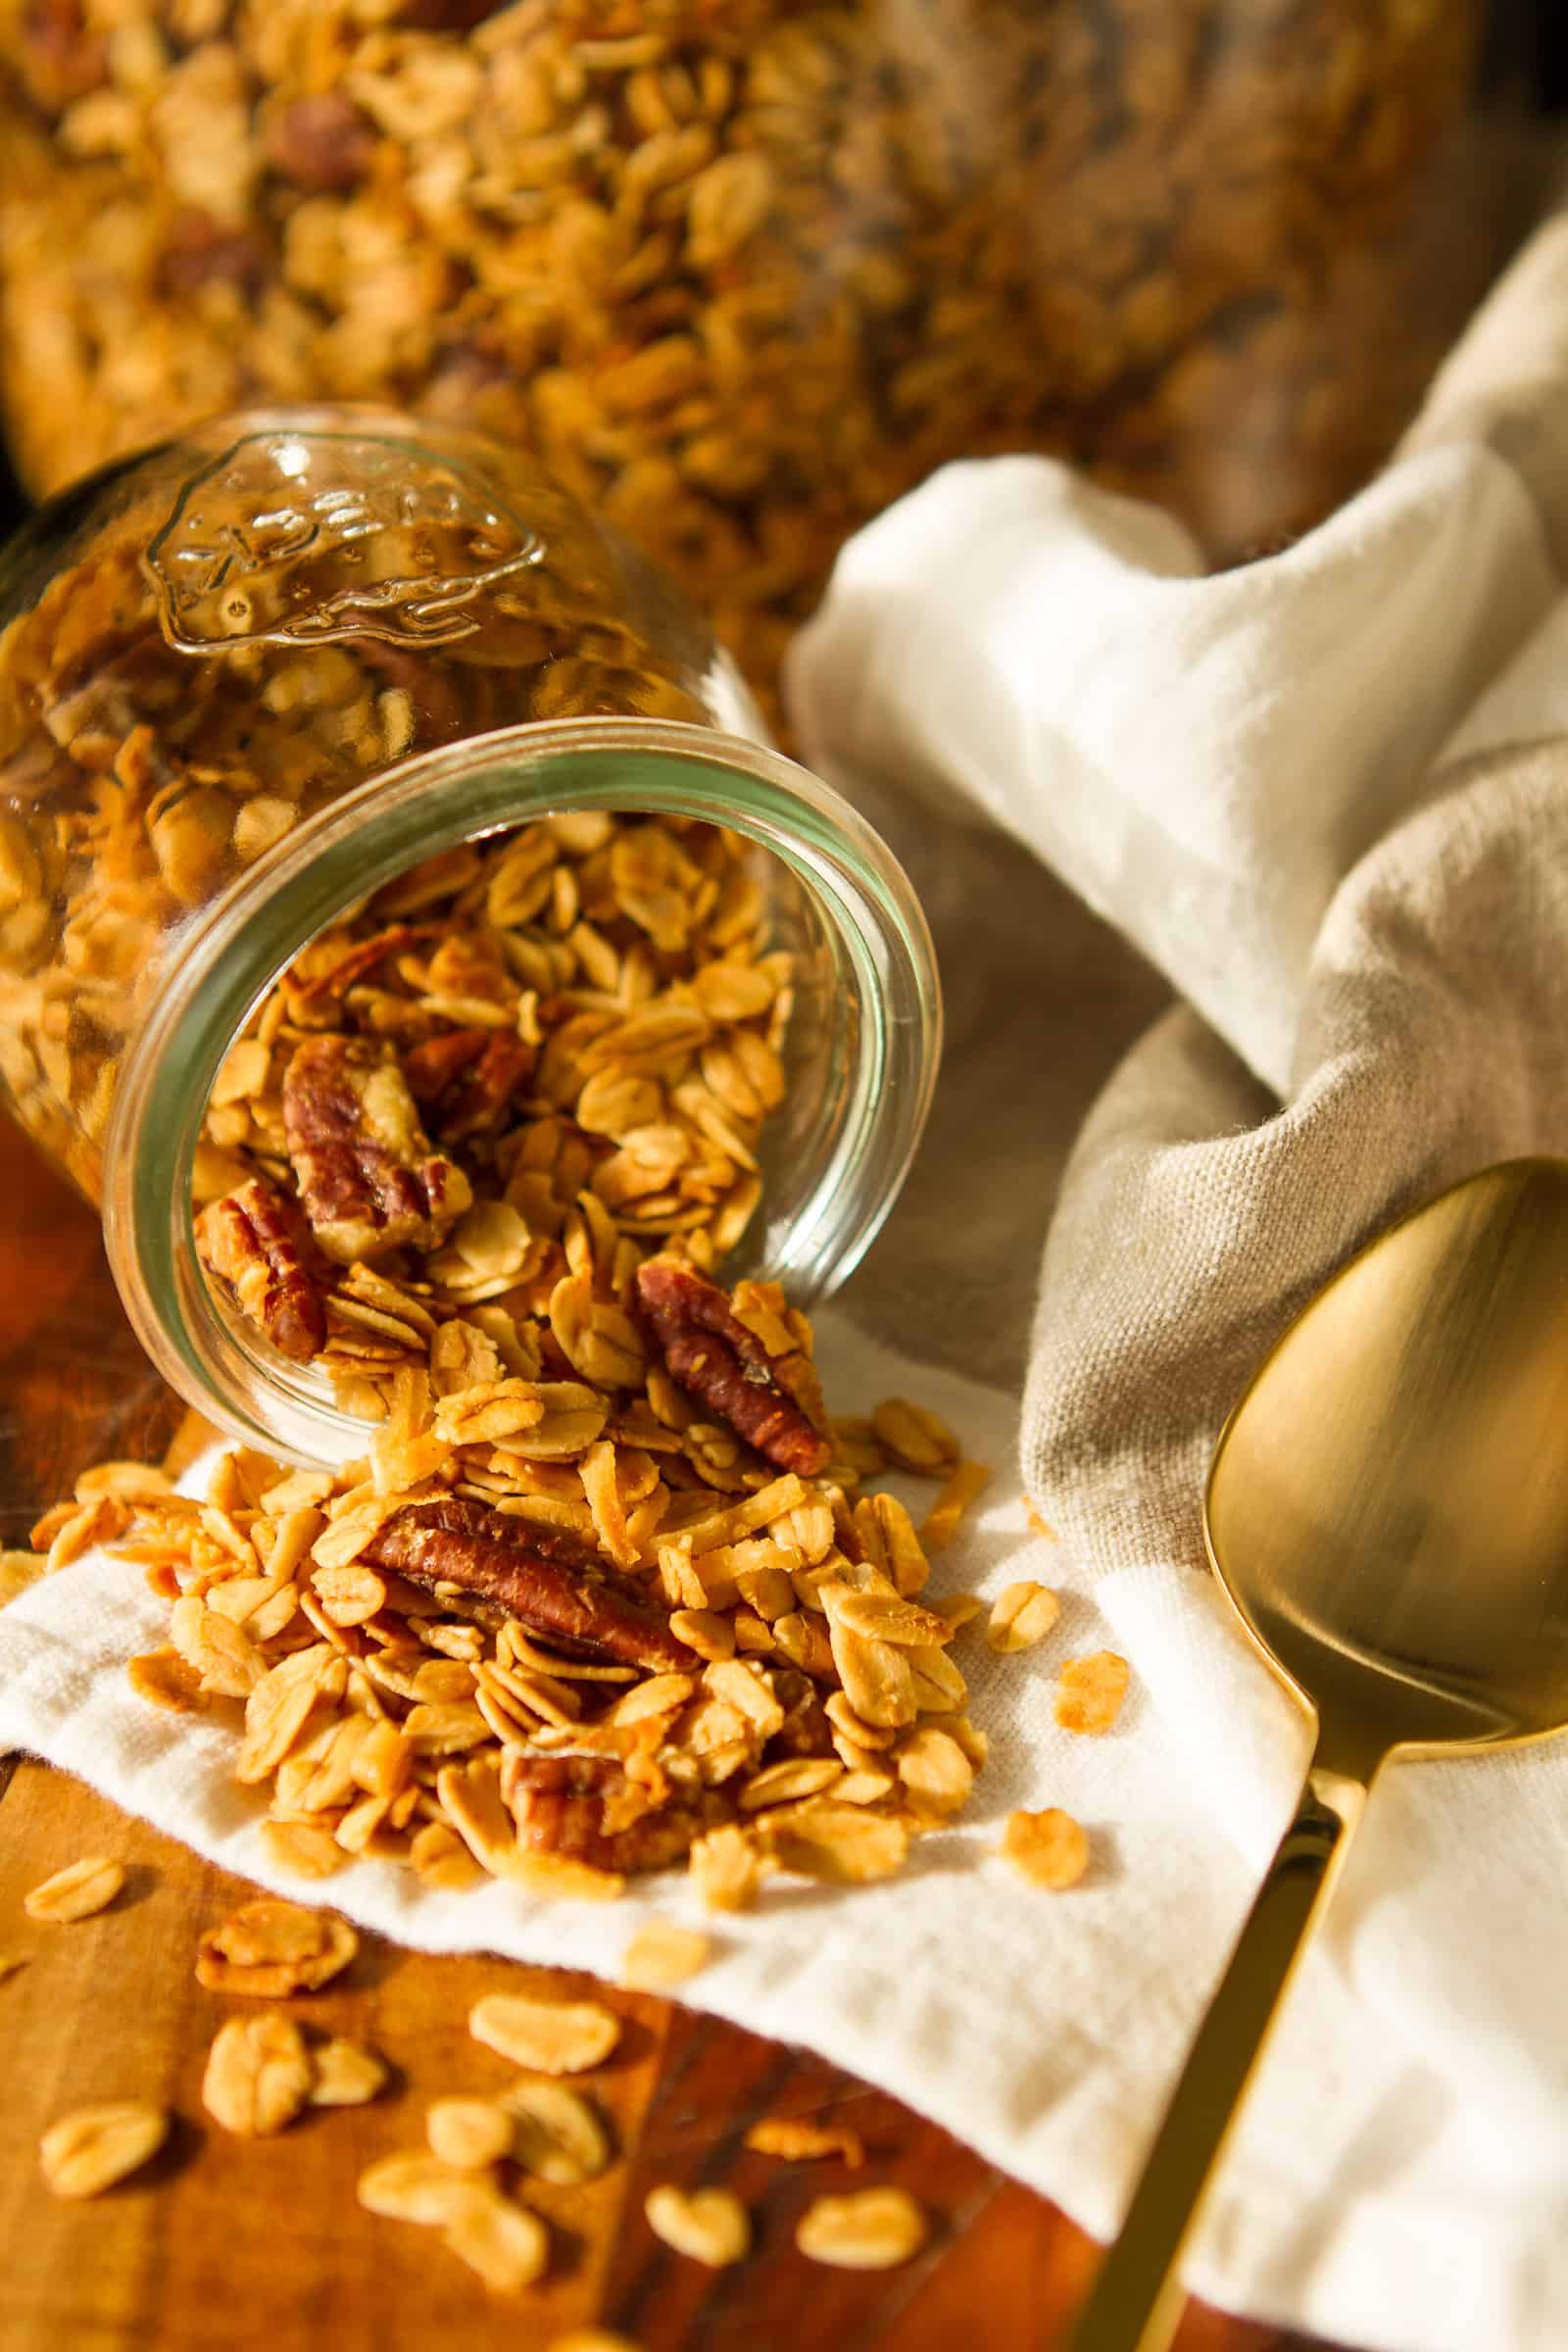 Homemade Granola Recipe -- this amazingly easy granola recipe boasts just 5 simple ingredients, each carefully chosen for maximum flavor and texture. So buttery, crunchy and utterly delicious, you won't be able to keep your hands off of it!